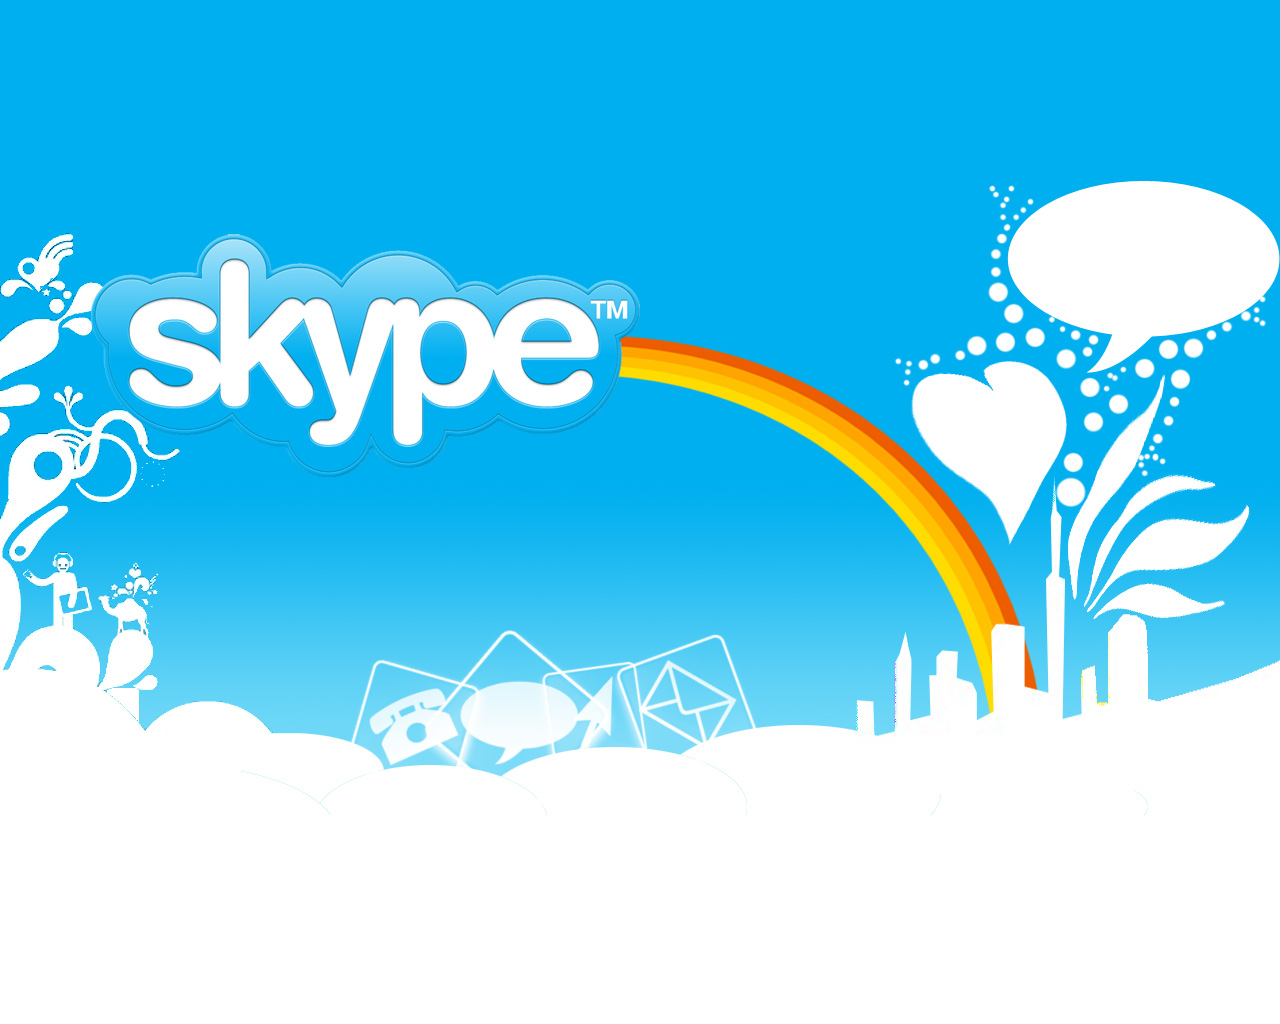 Government Wants Skype to Set Up Servers in India